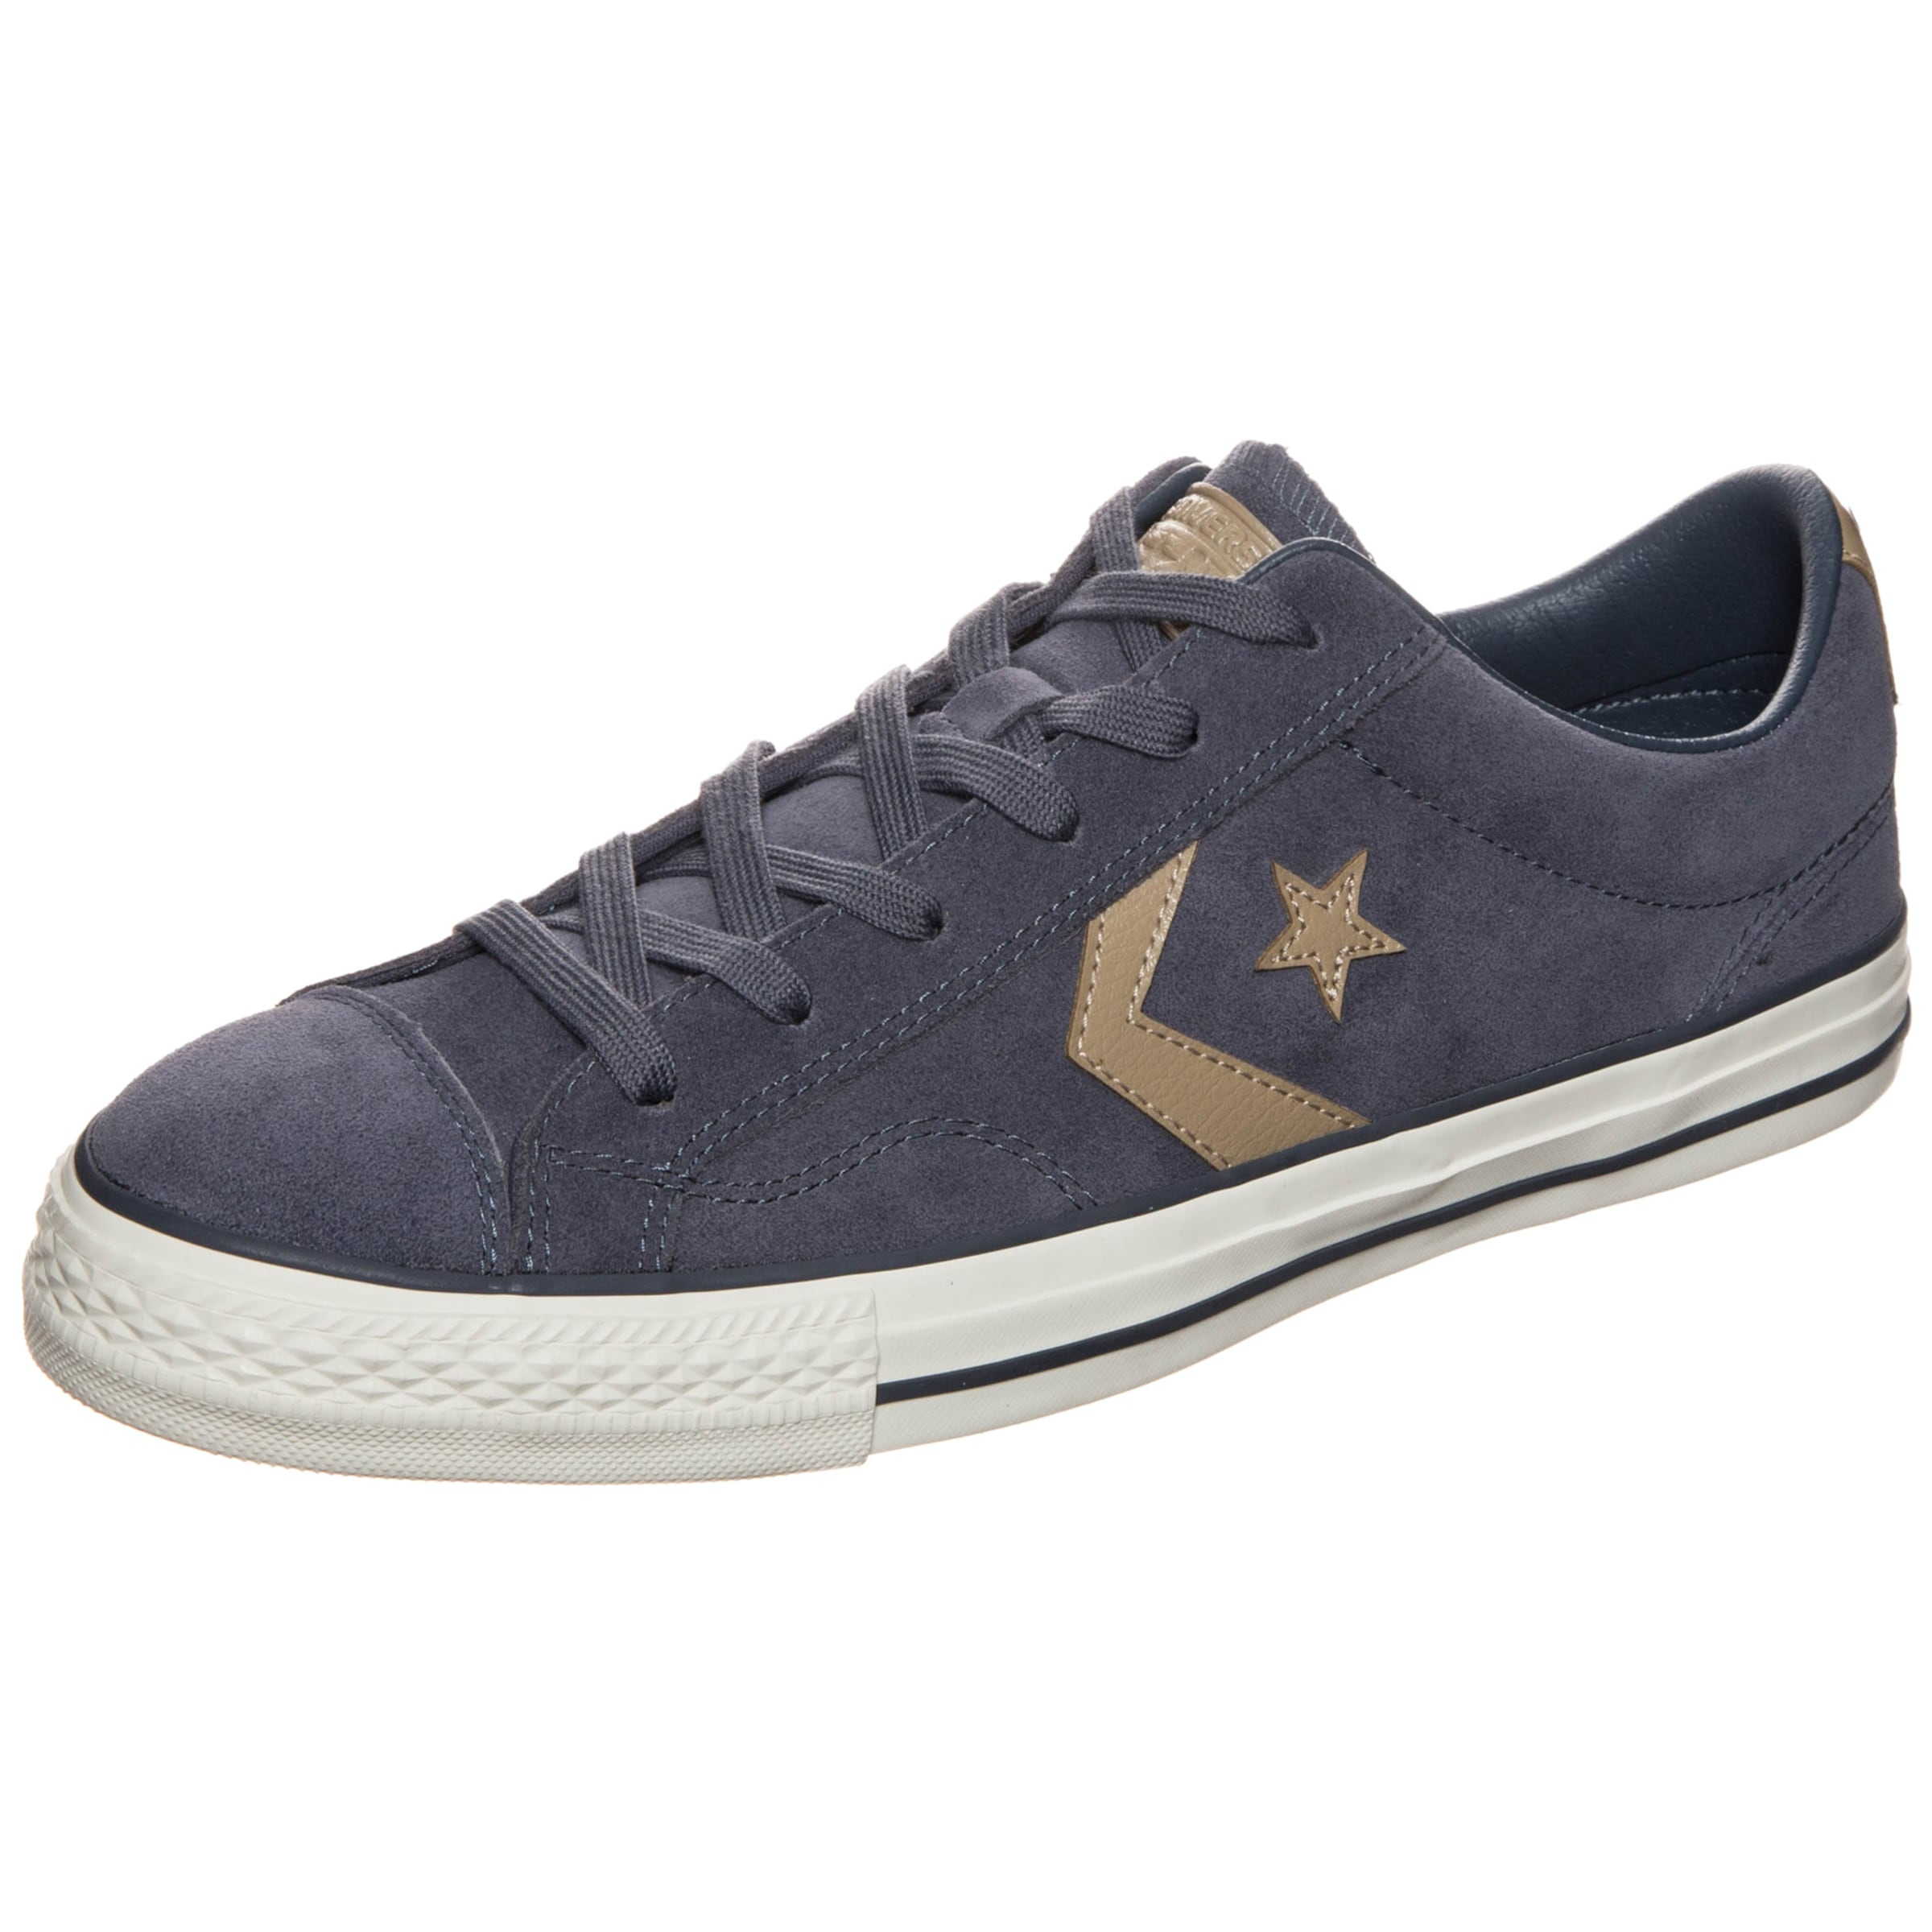 CONVERSE | Cons Star Player OX Sneaker